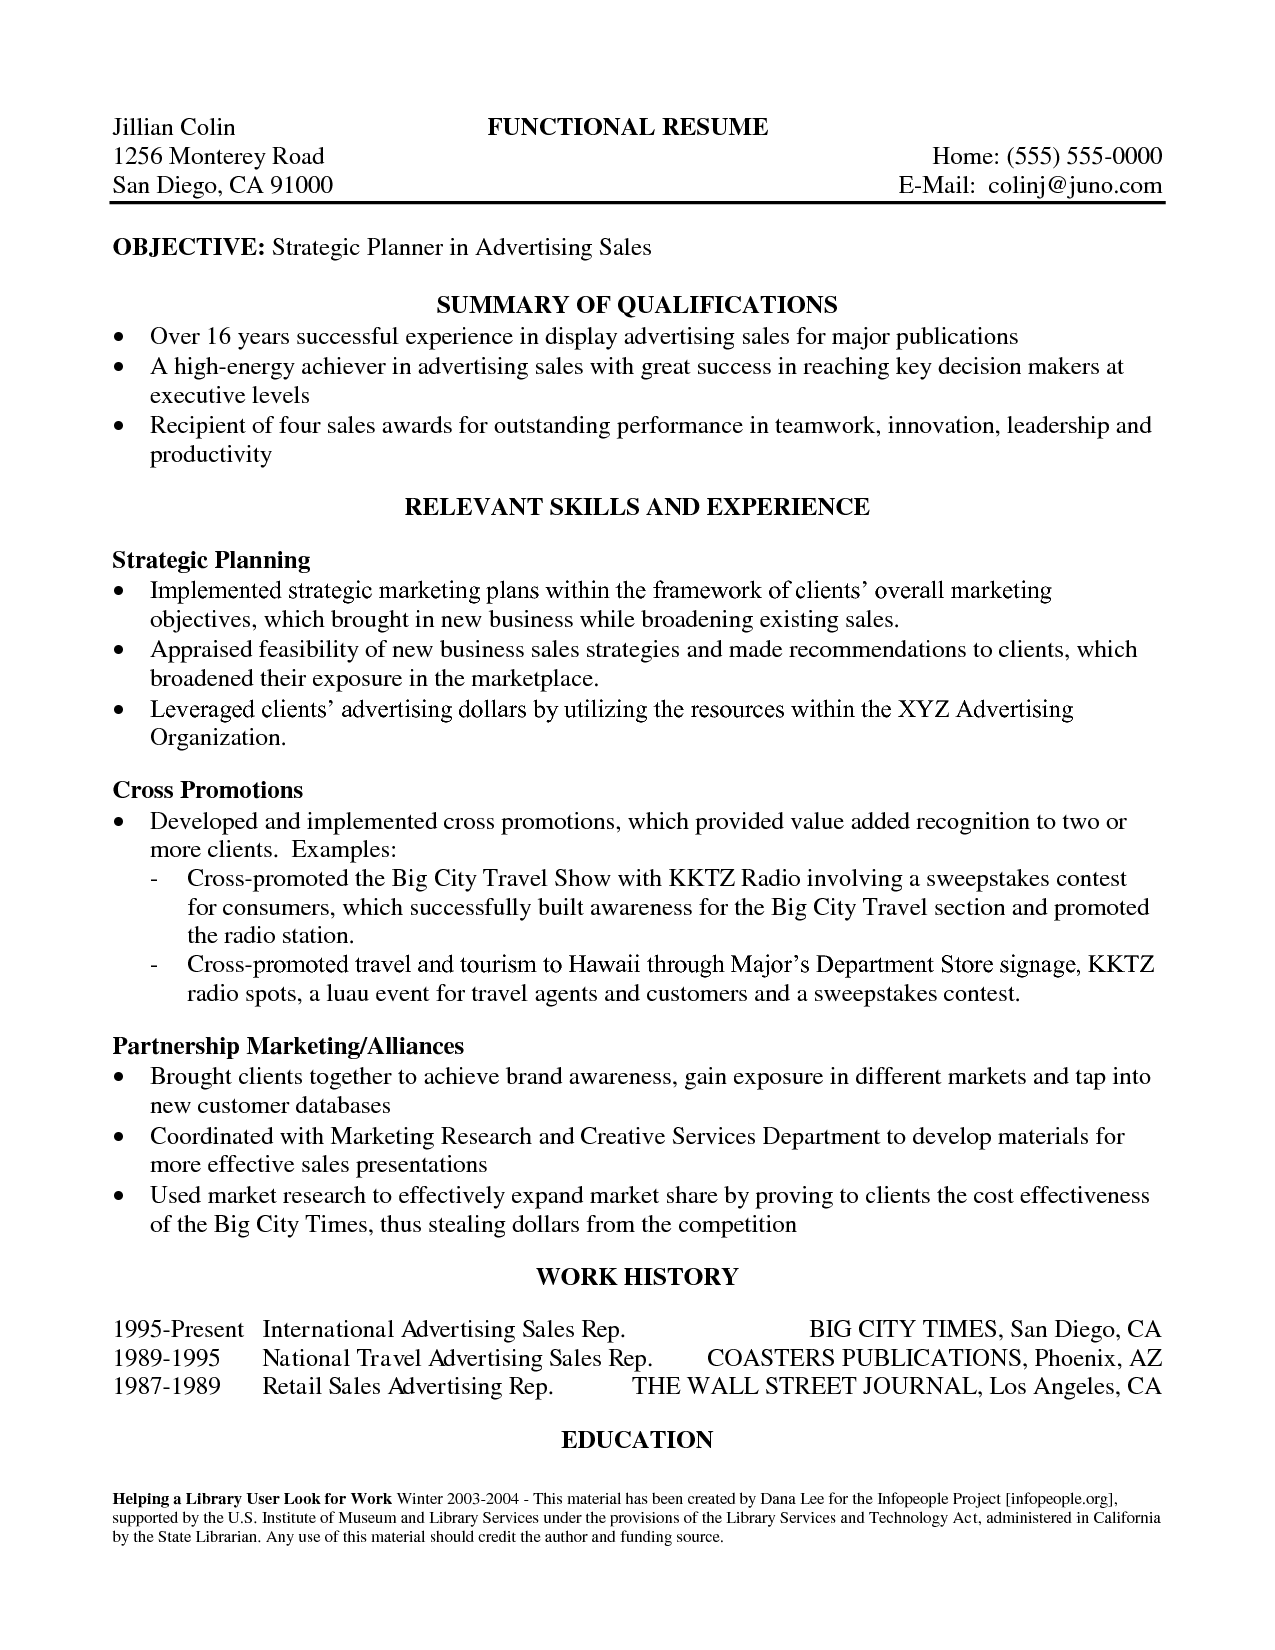 Professional Summary For Resume Sample